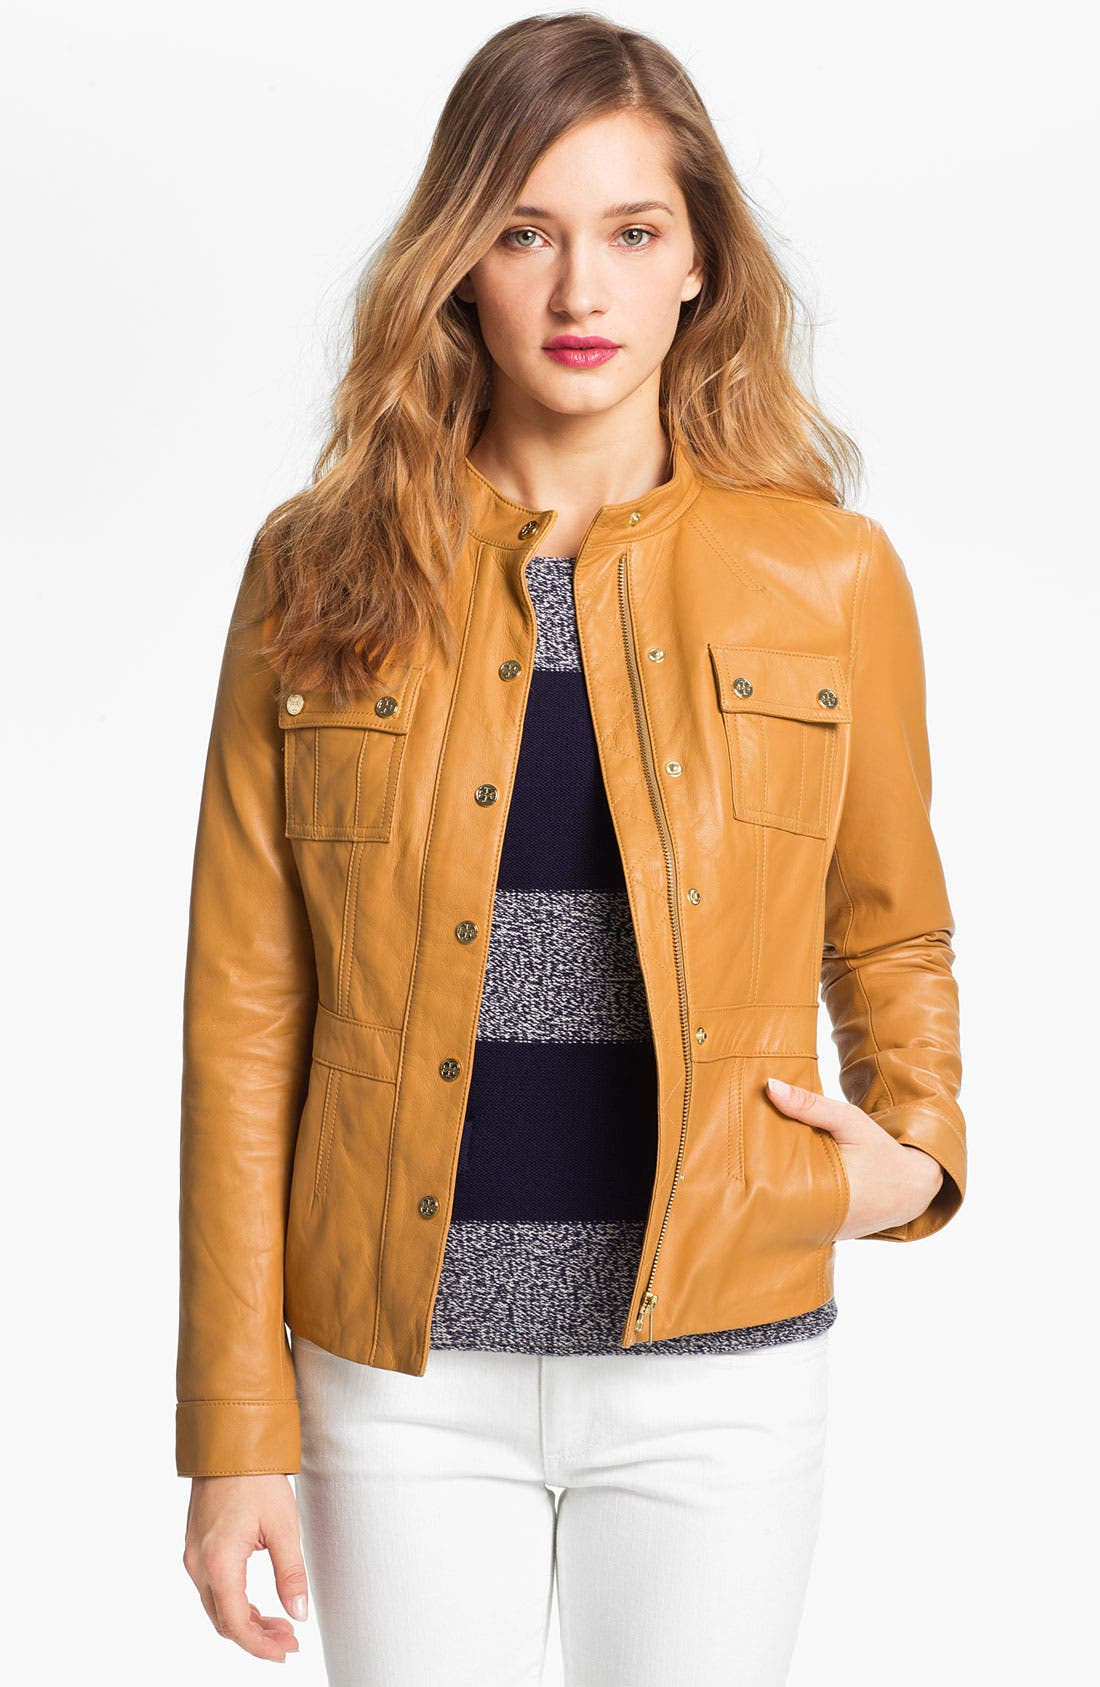 Alternate Image 1 Selected - Tory Burch 'Beacon' Leather Moto Jacket